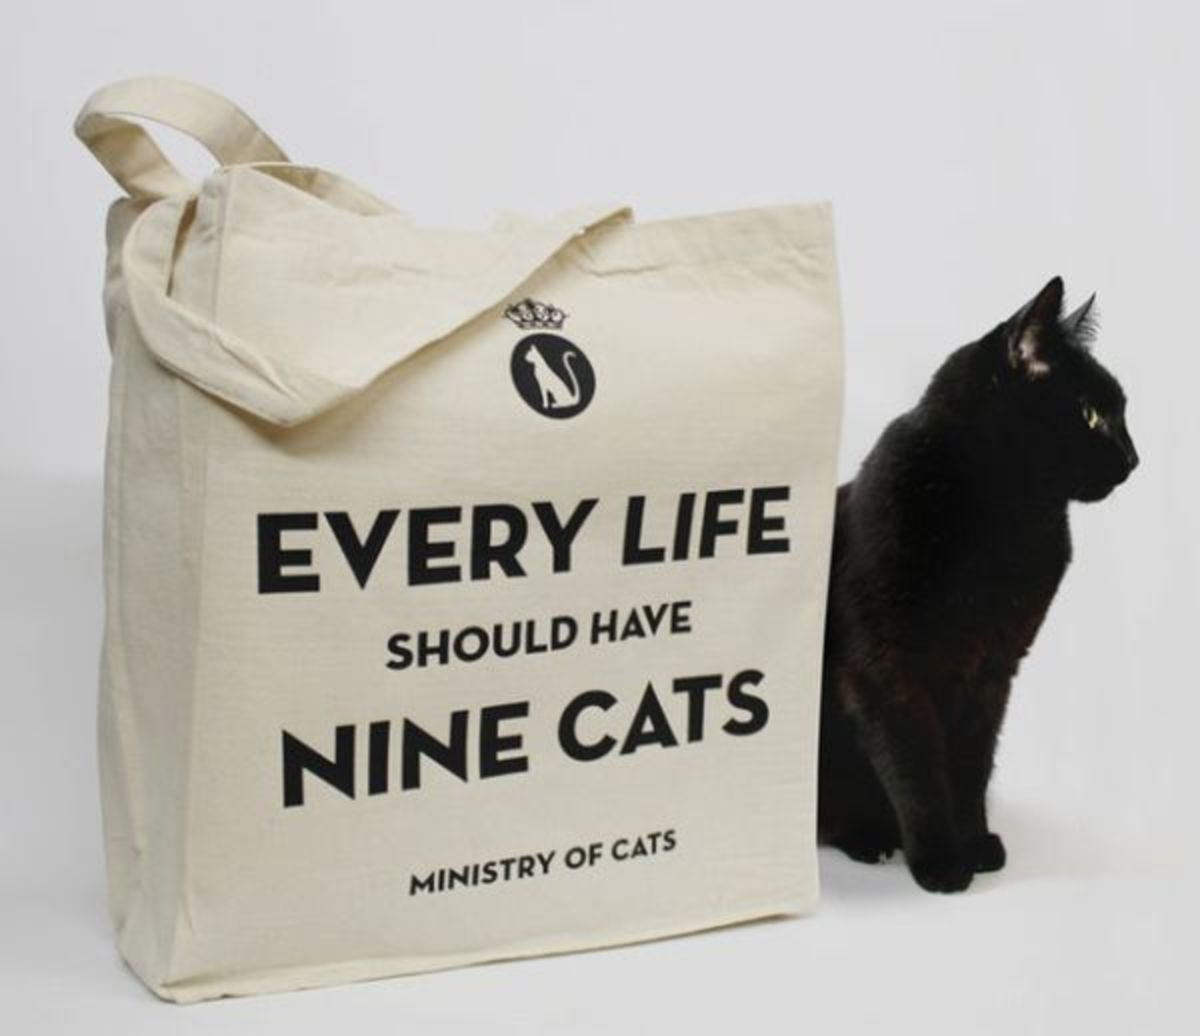 Words of Wisdom - 9 cats for every life